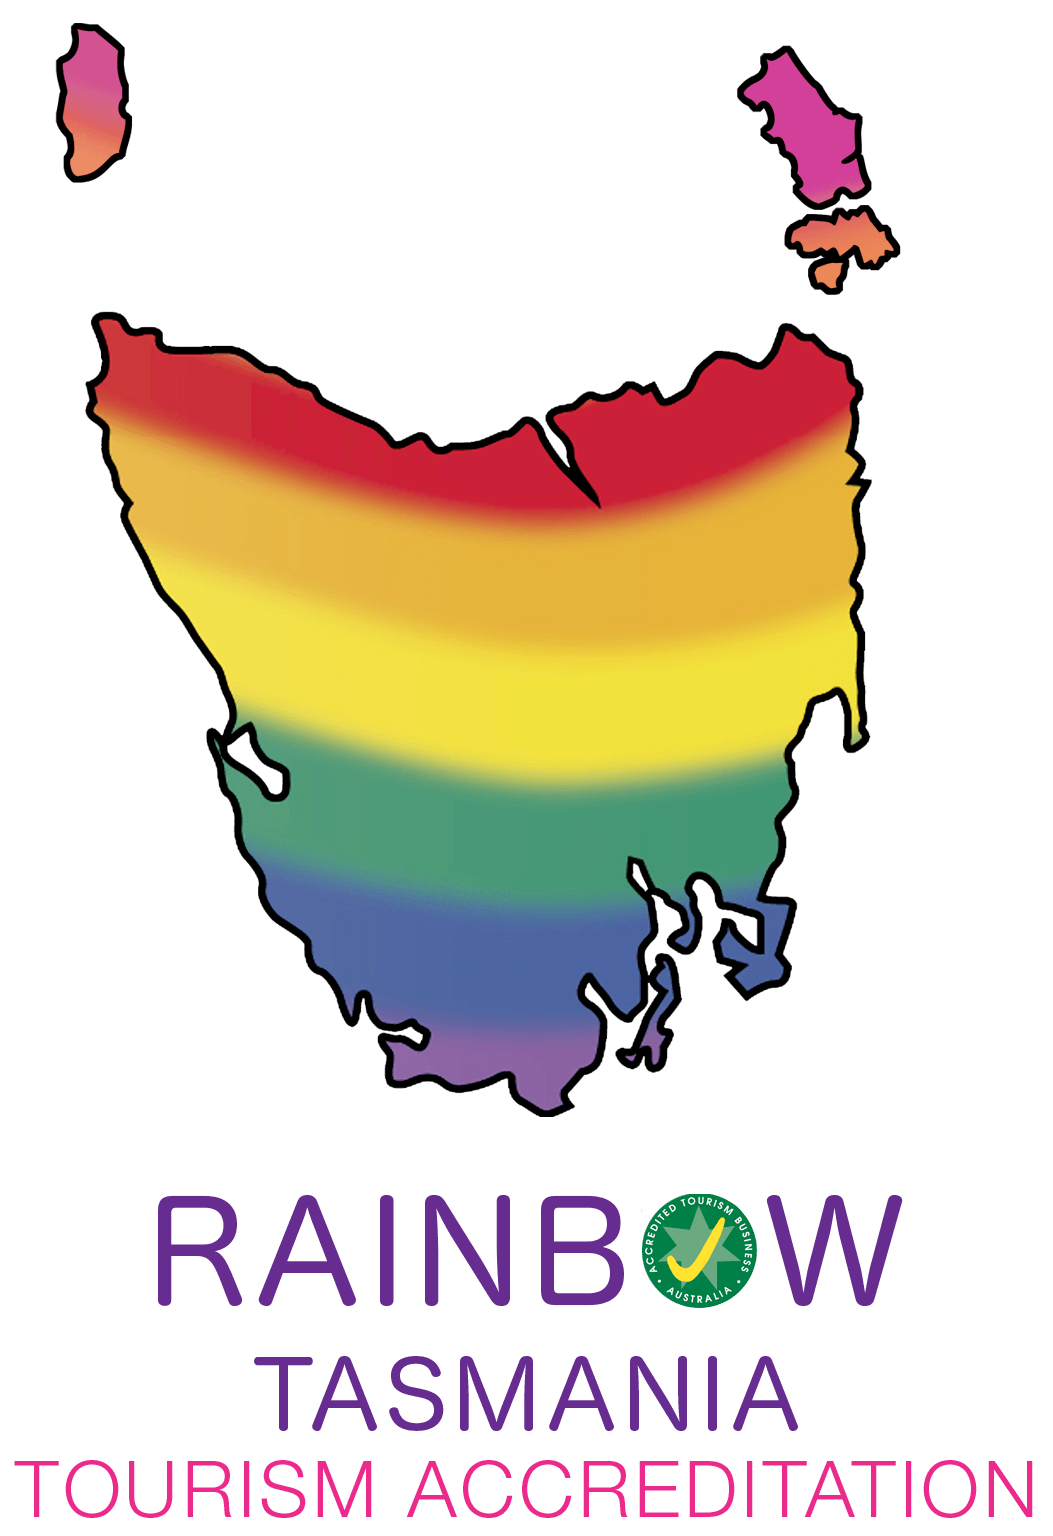 Rainbow Tasmania Tourism Accreditation Logo (1).png